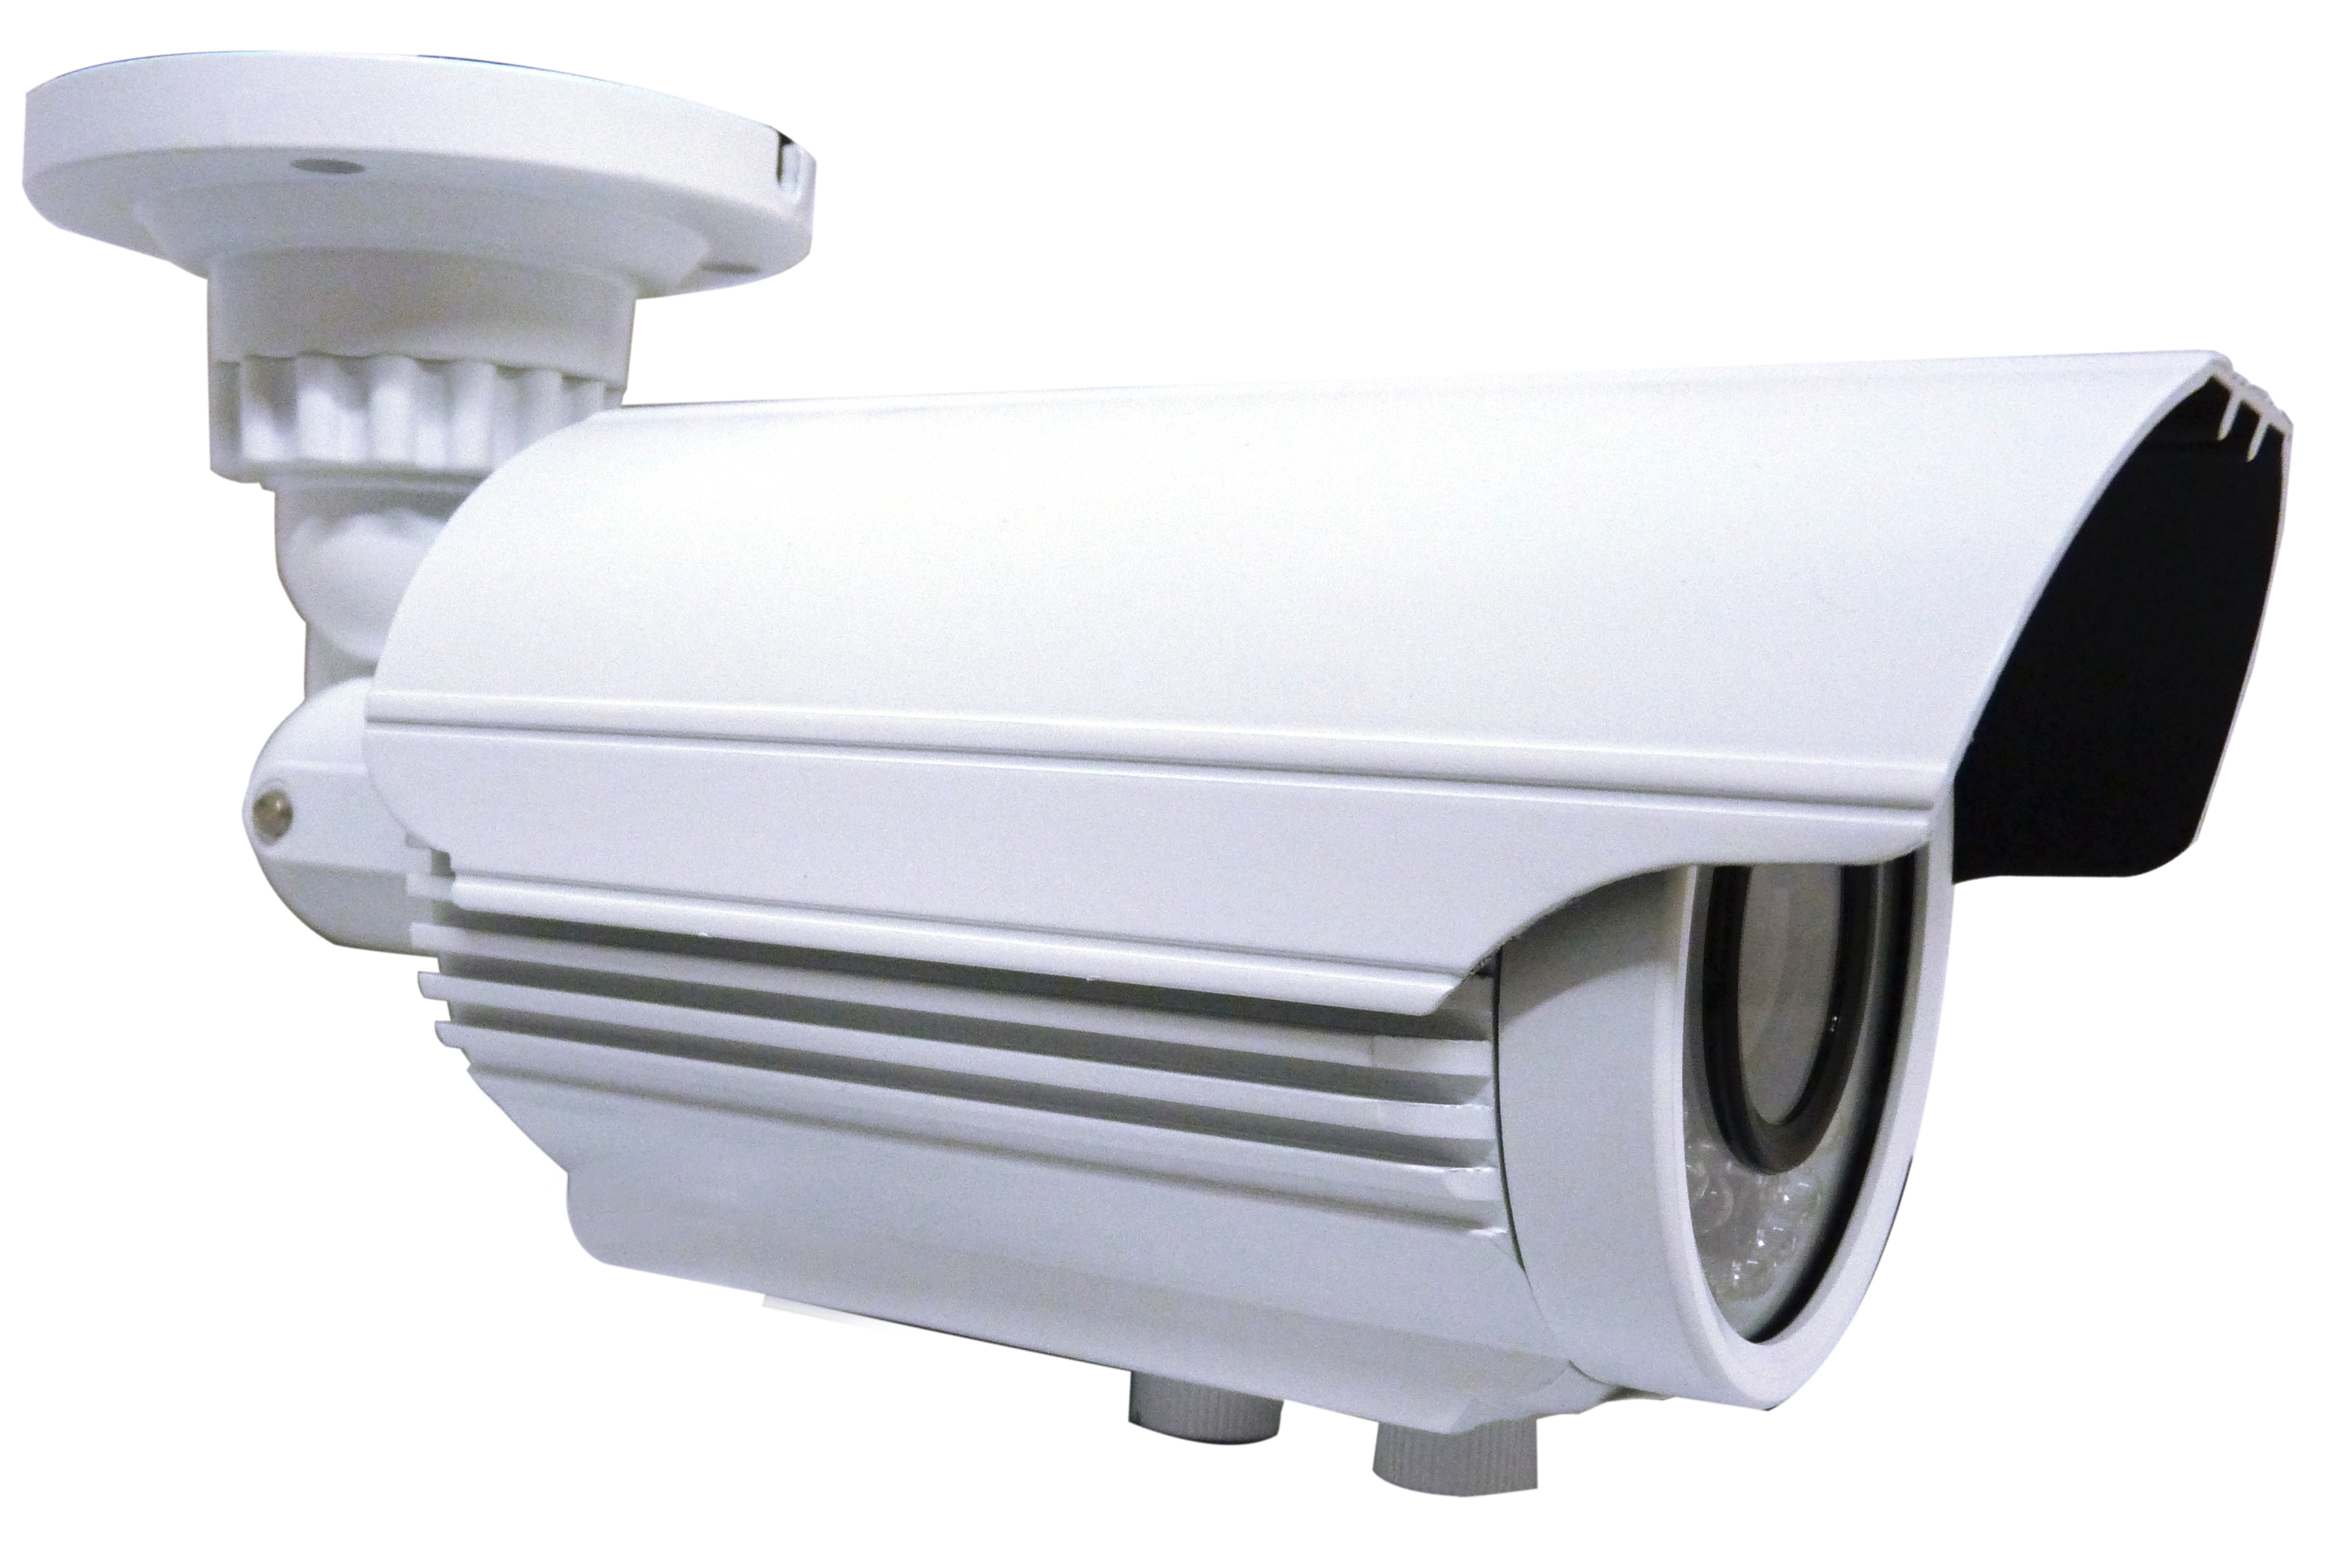 Image for DBS 116W - 700TVL CCTV Bullet Security Camera - 1/3'' Sony Super HAD CCD II